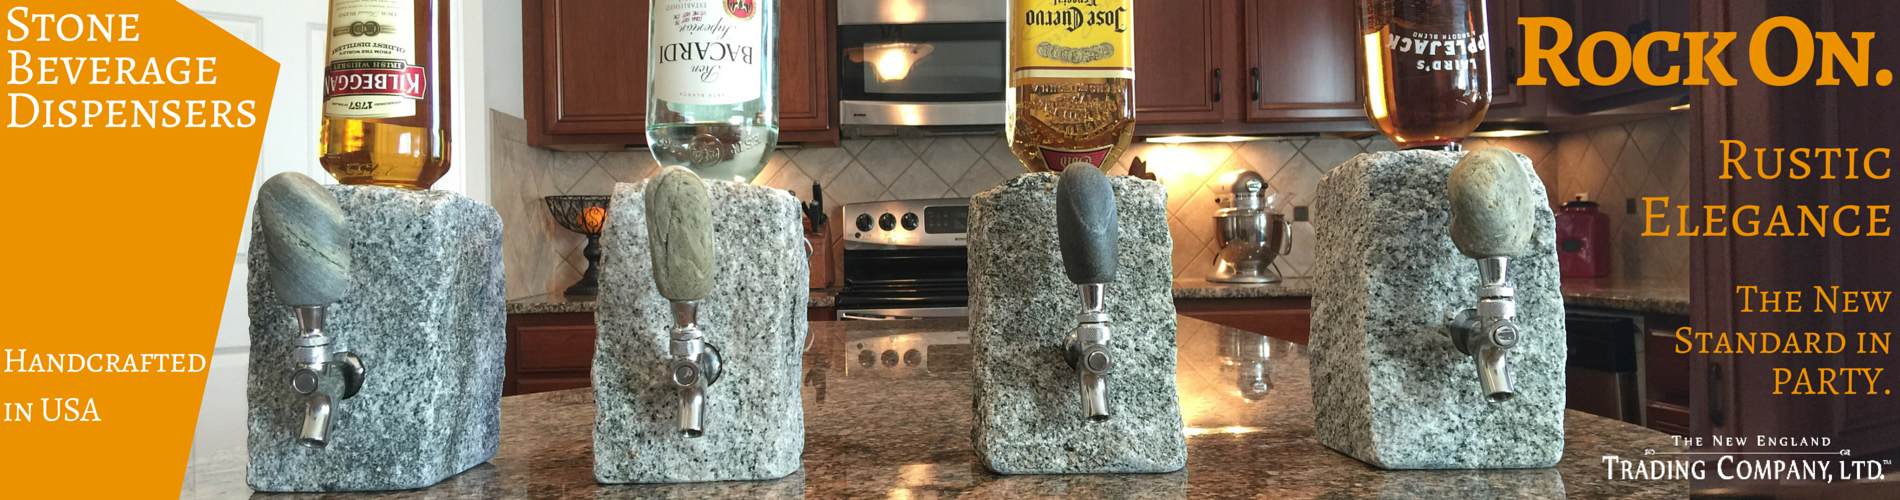 Stone Beverage Dispenser, Granite Cobblestone Handcrafted in USA